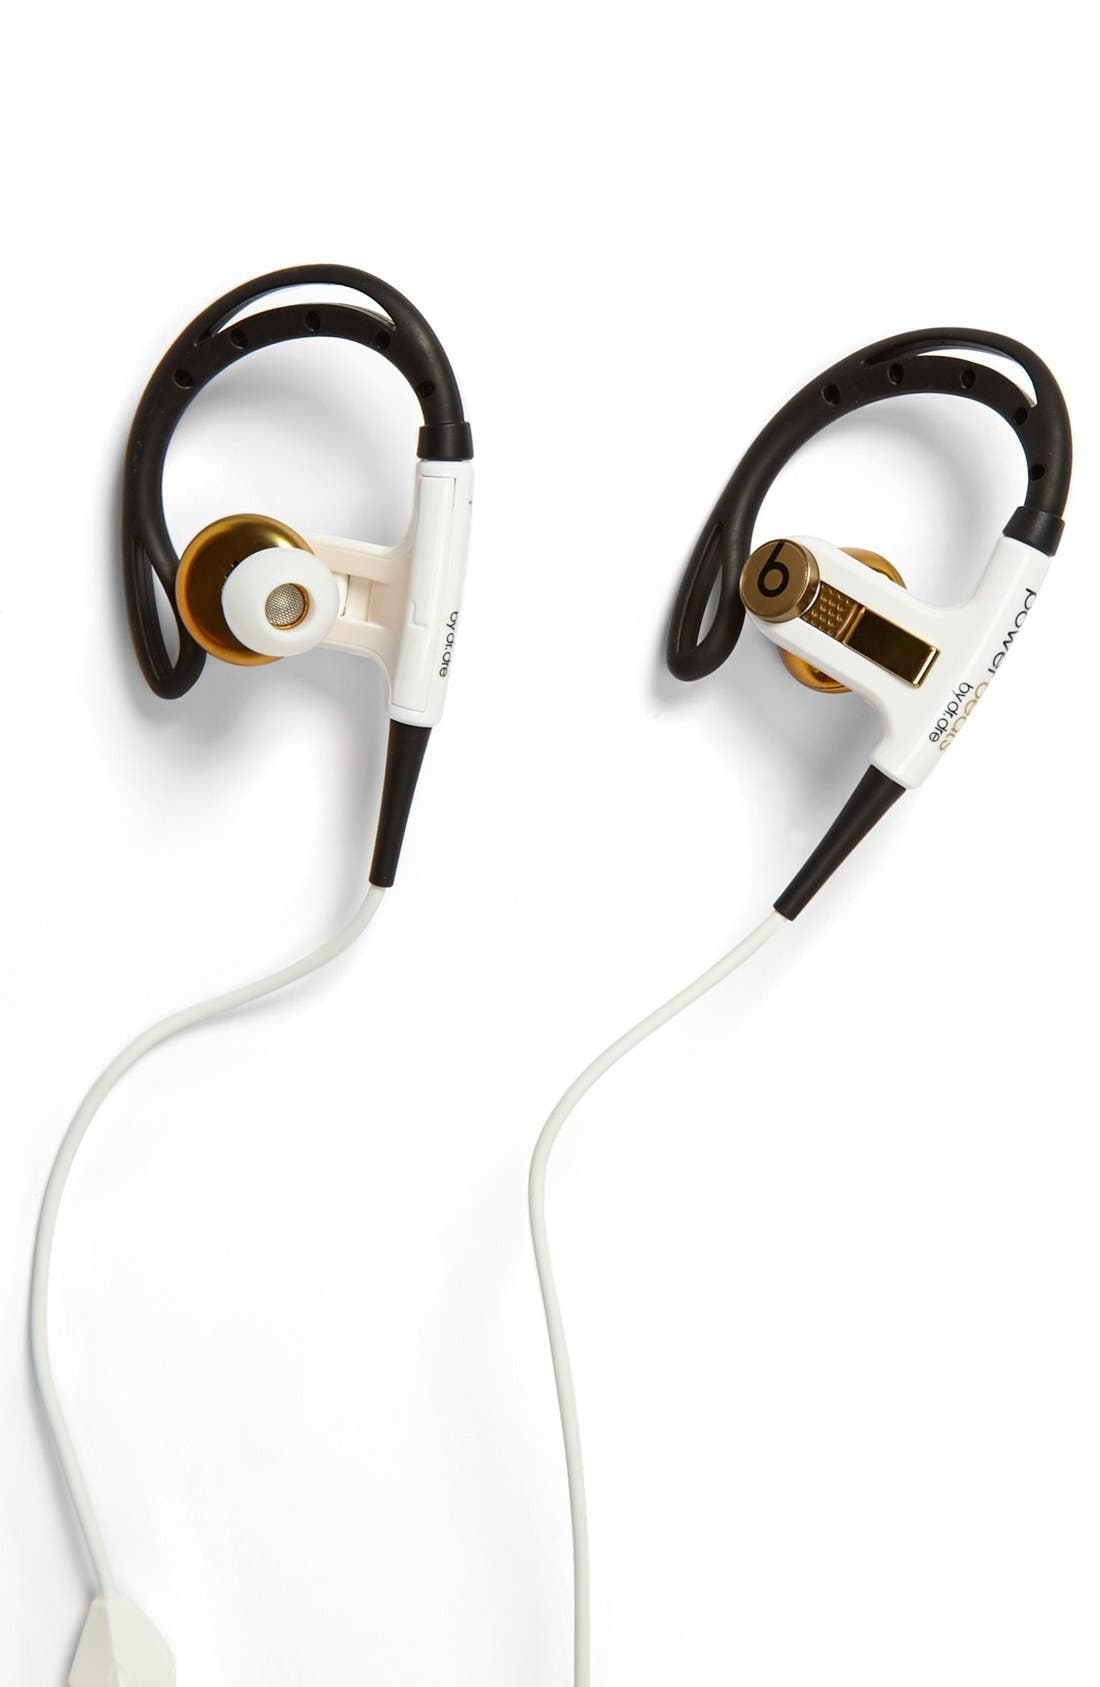 Main Image - Beats by Dr. Dre 'LeBron James Powerbeats' In-Ear Headphones (Limited Edition)